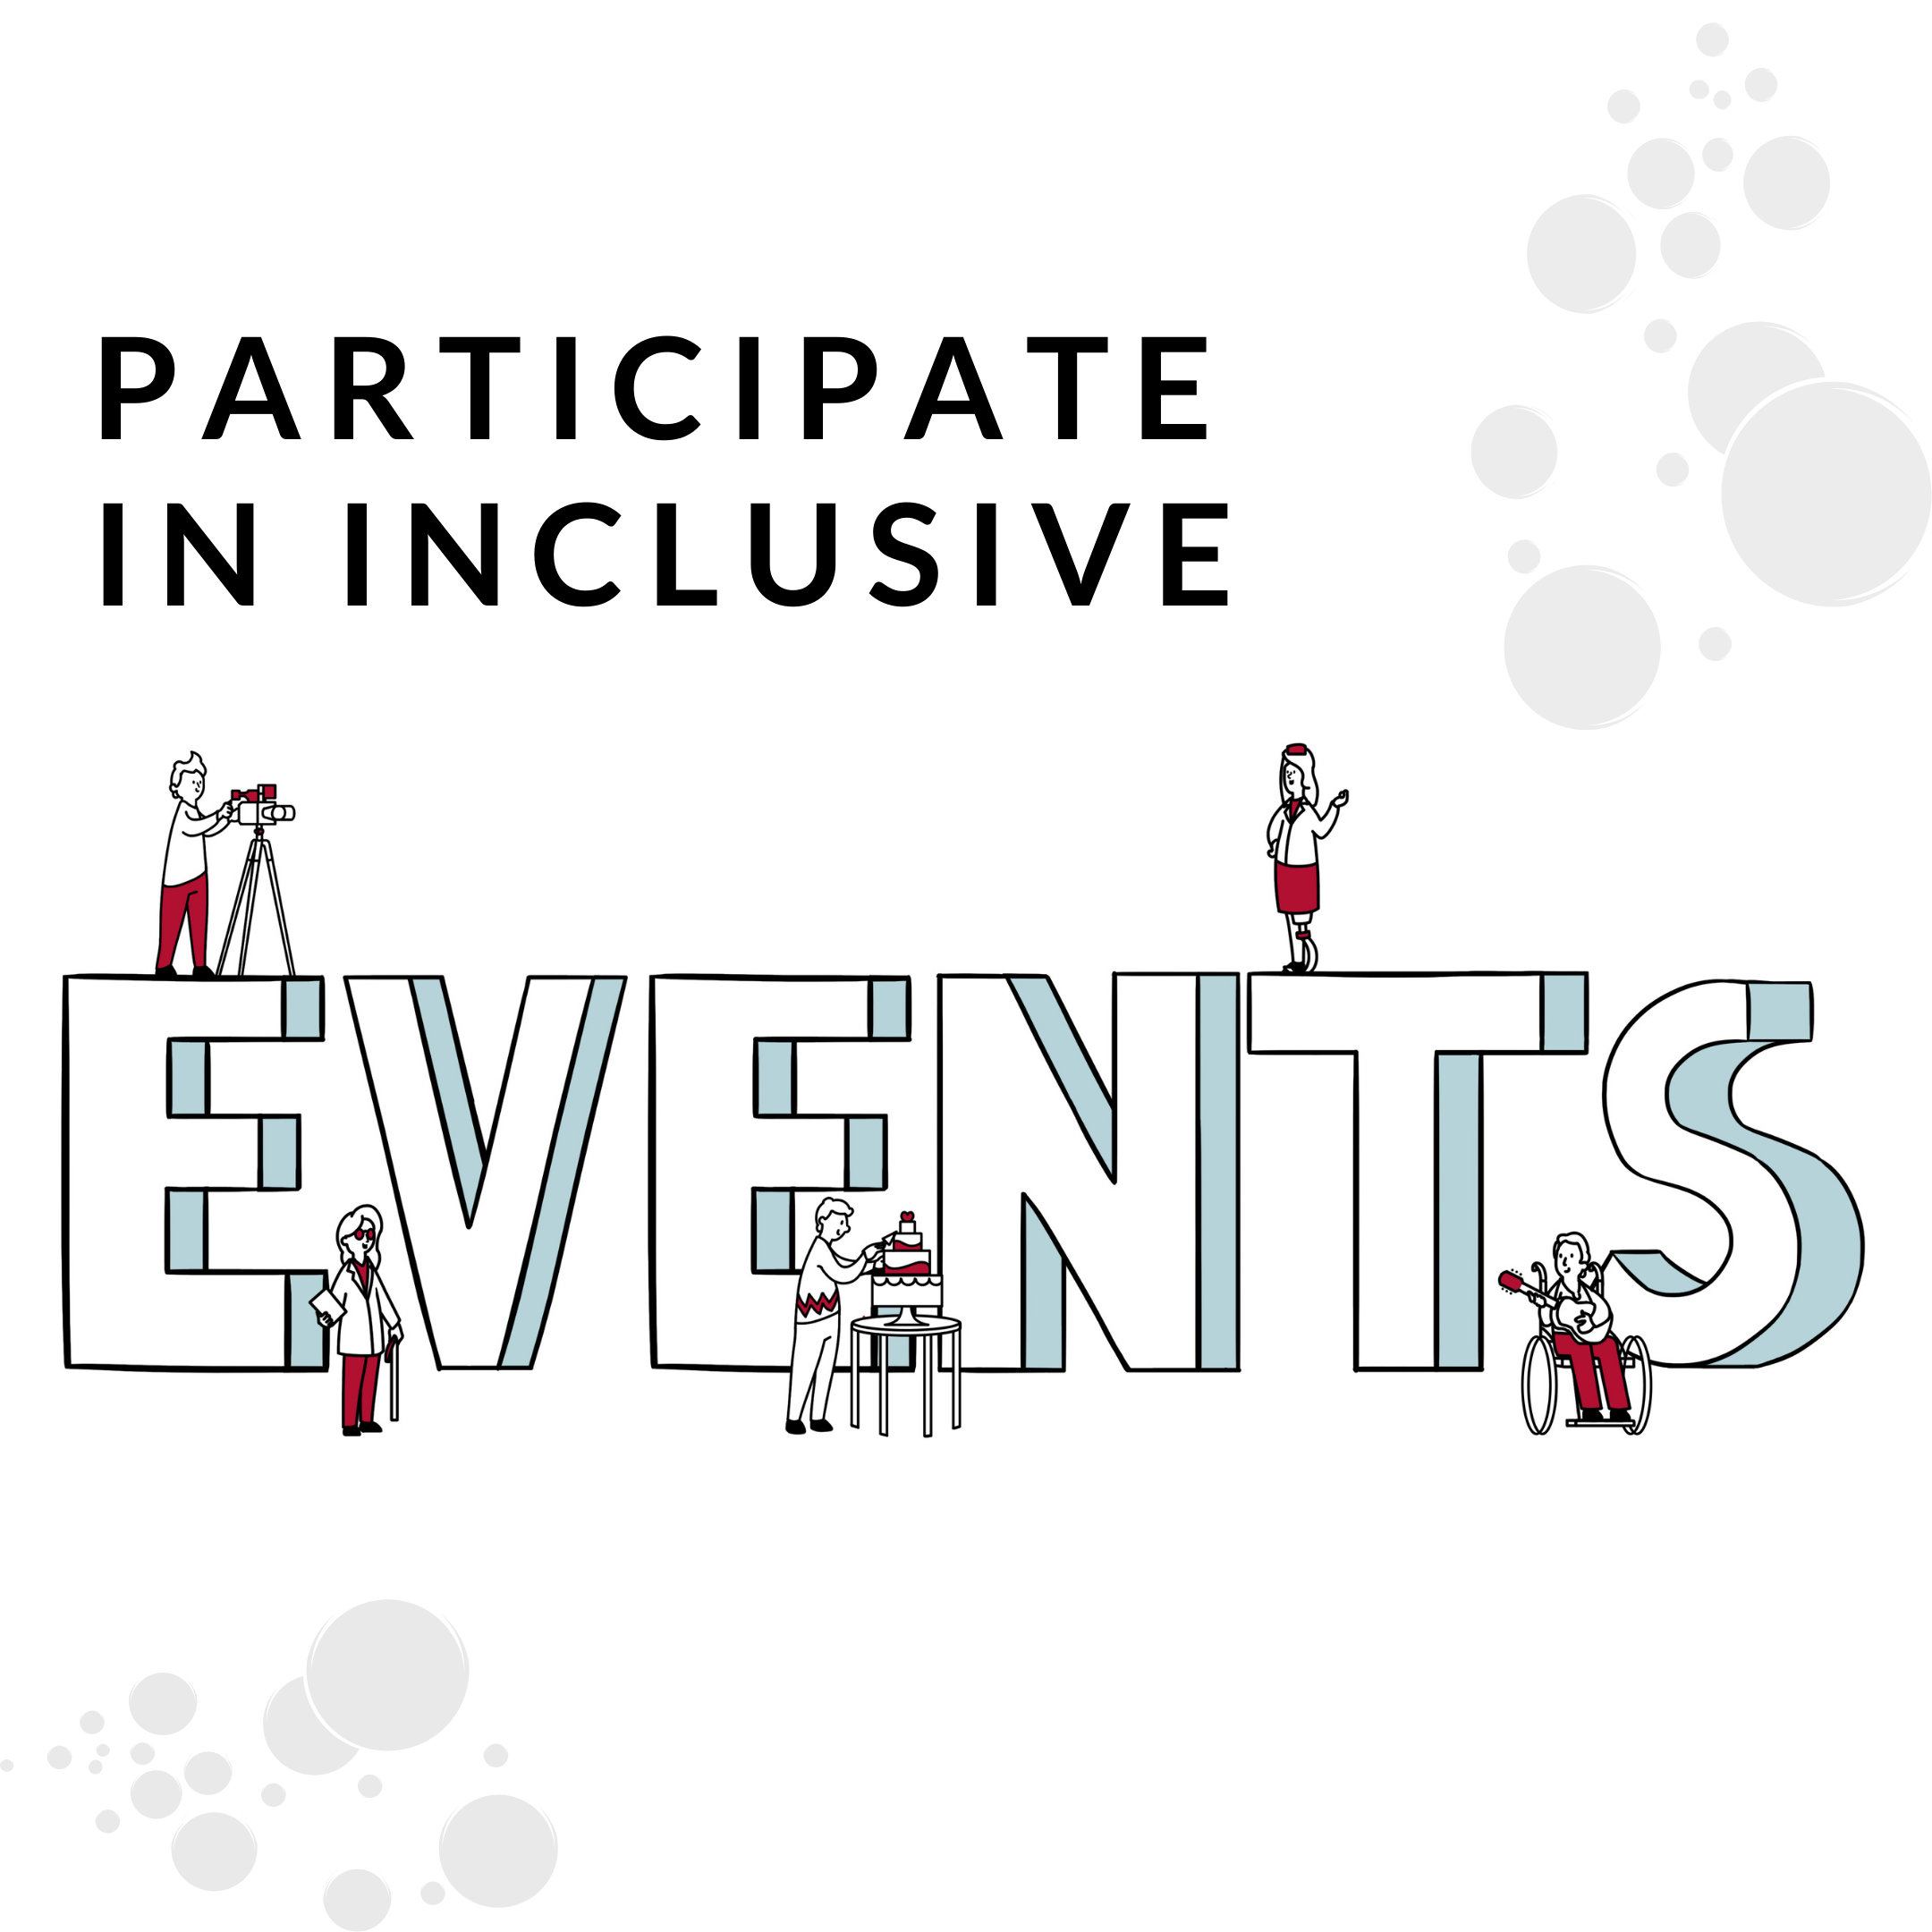 Photo with text Participate in inclusive Events. People are doing different activities around the word Events.